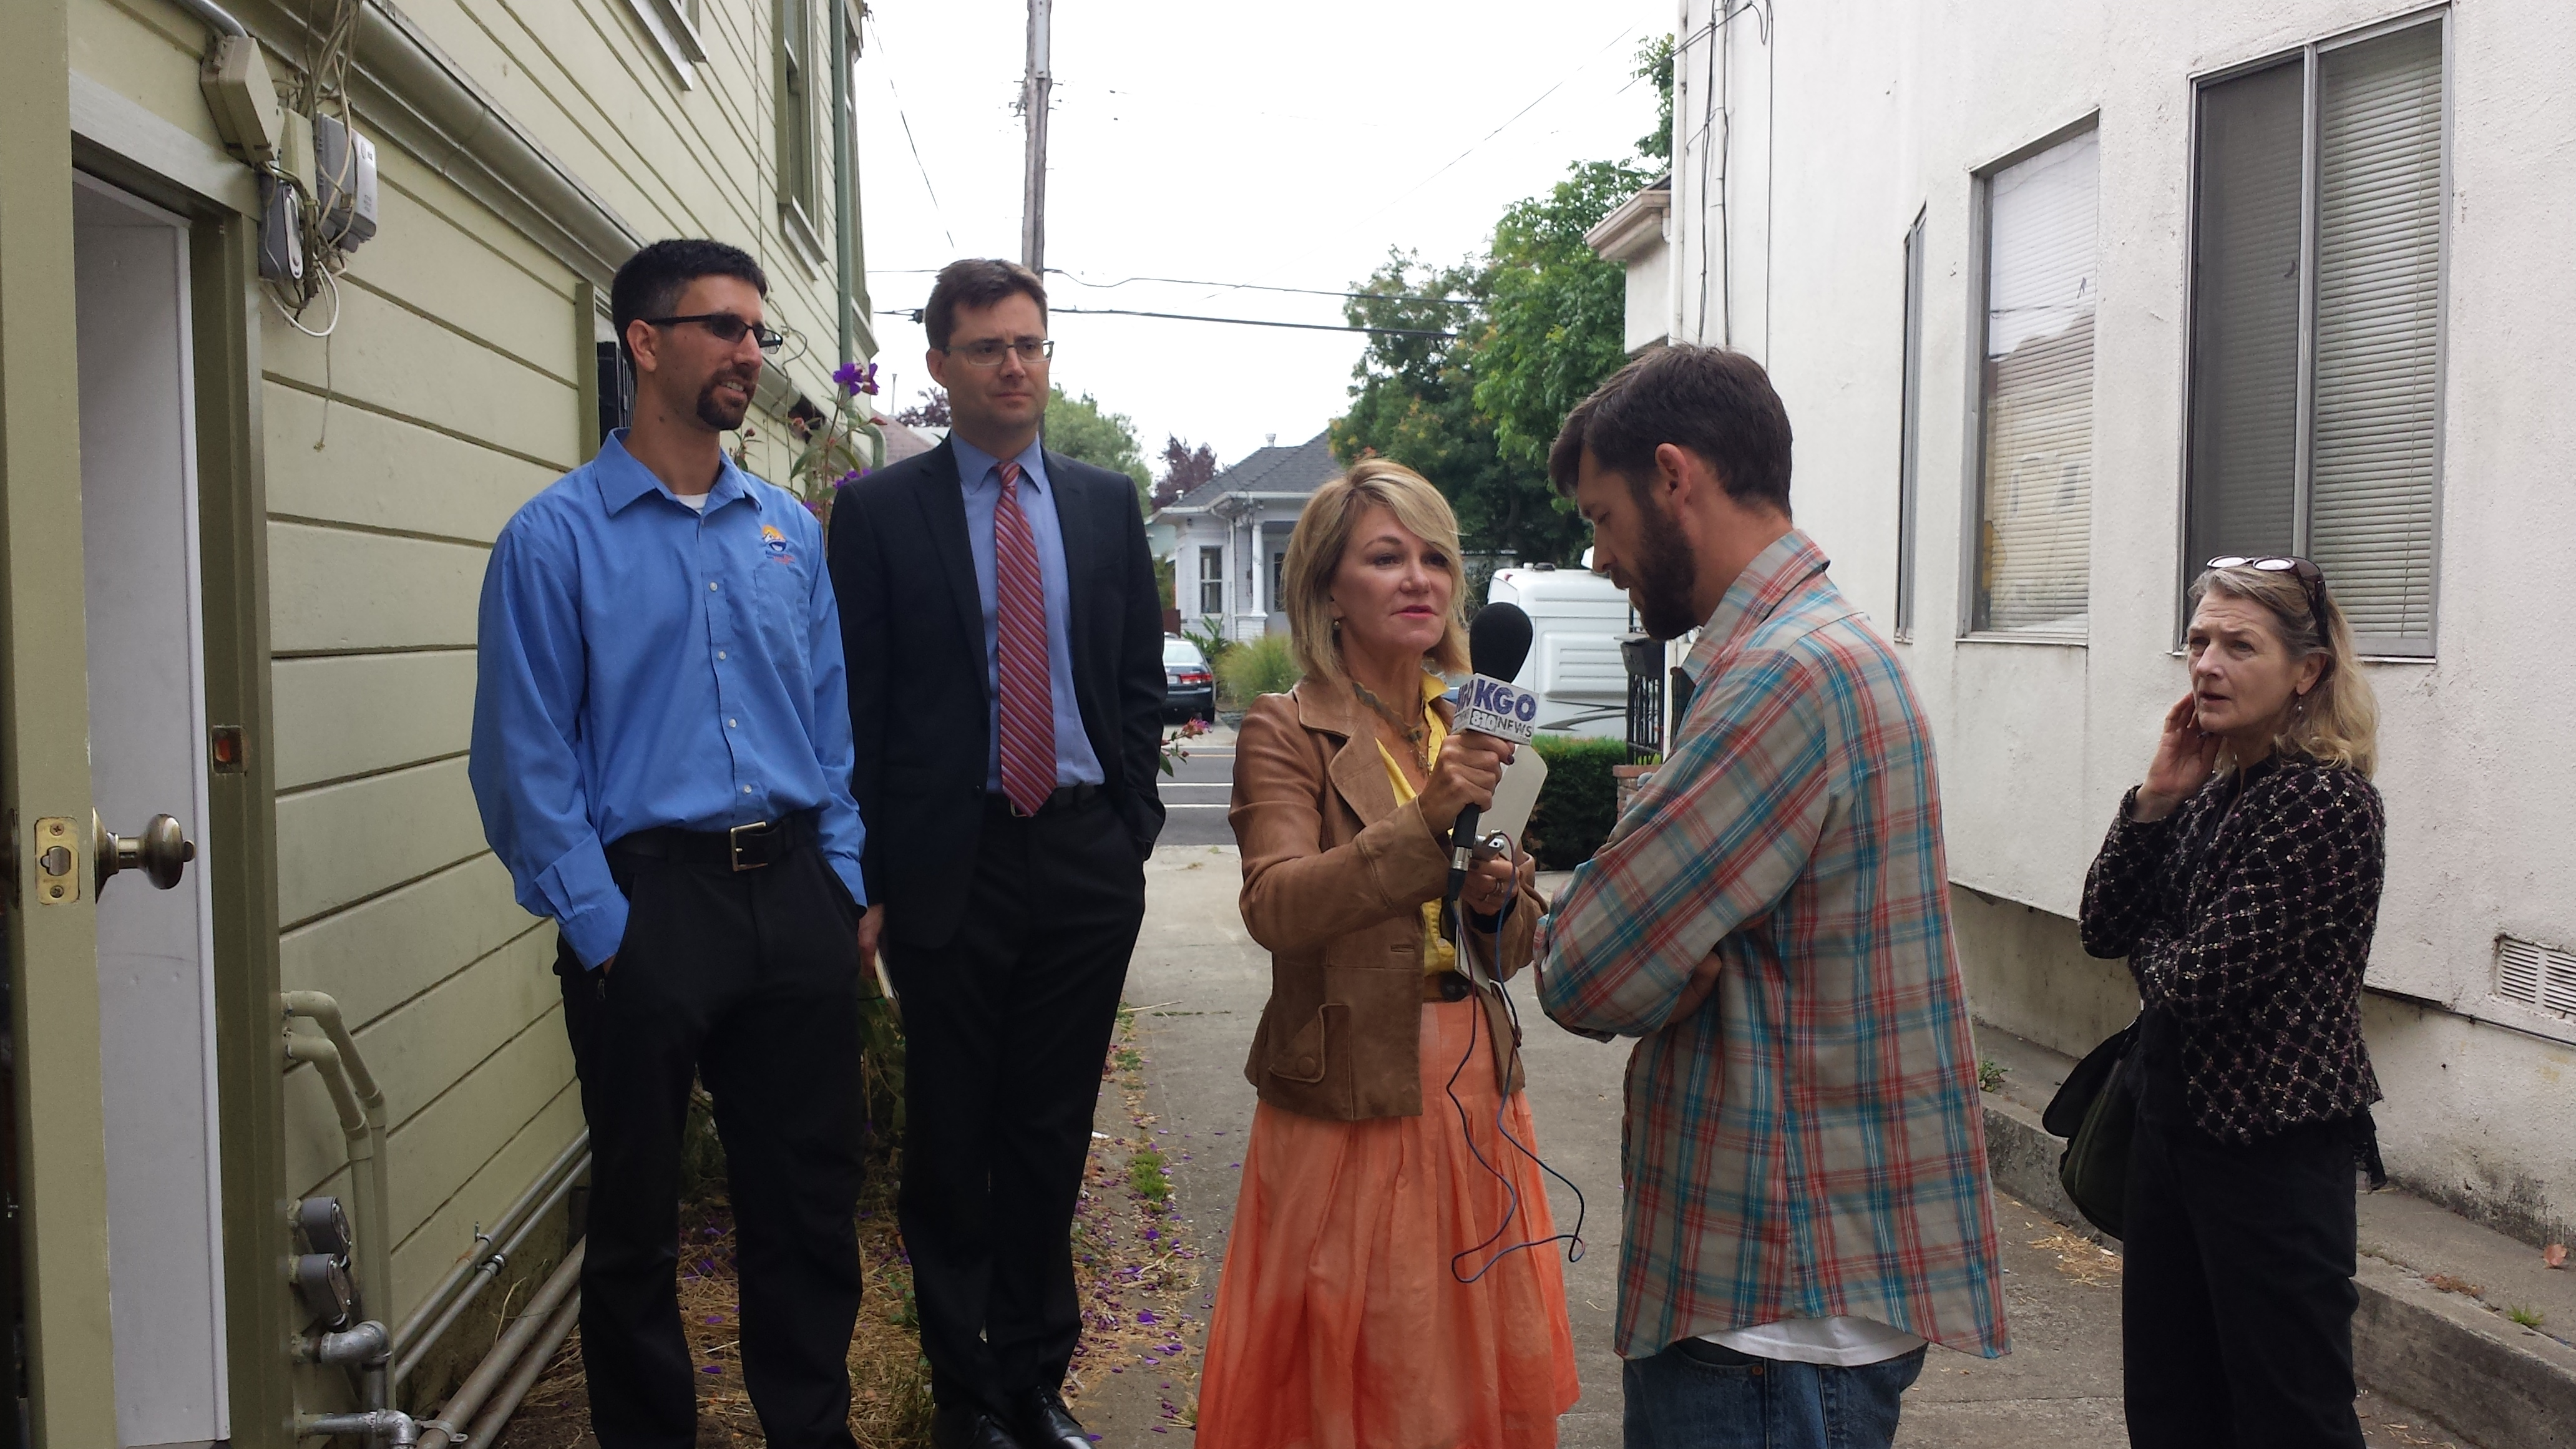 Interview with homeowner at the launch of California First (Click on image to expand) - Image Courtesy Renewable Funding